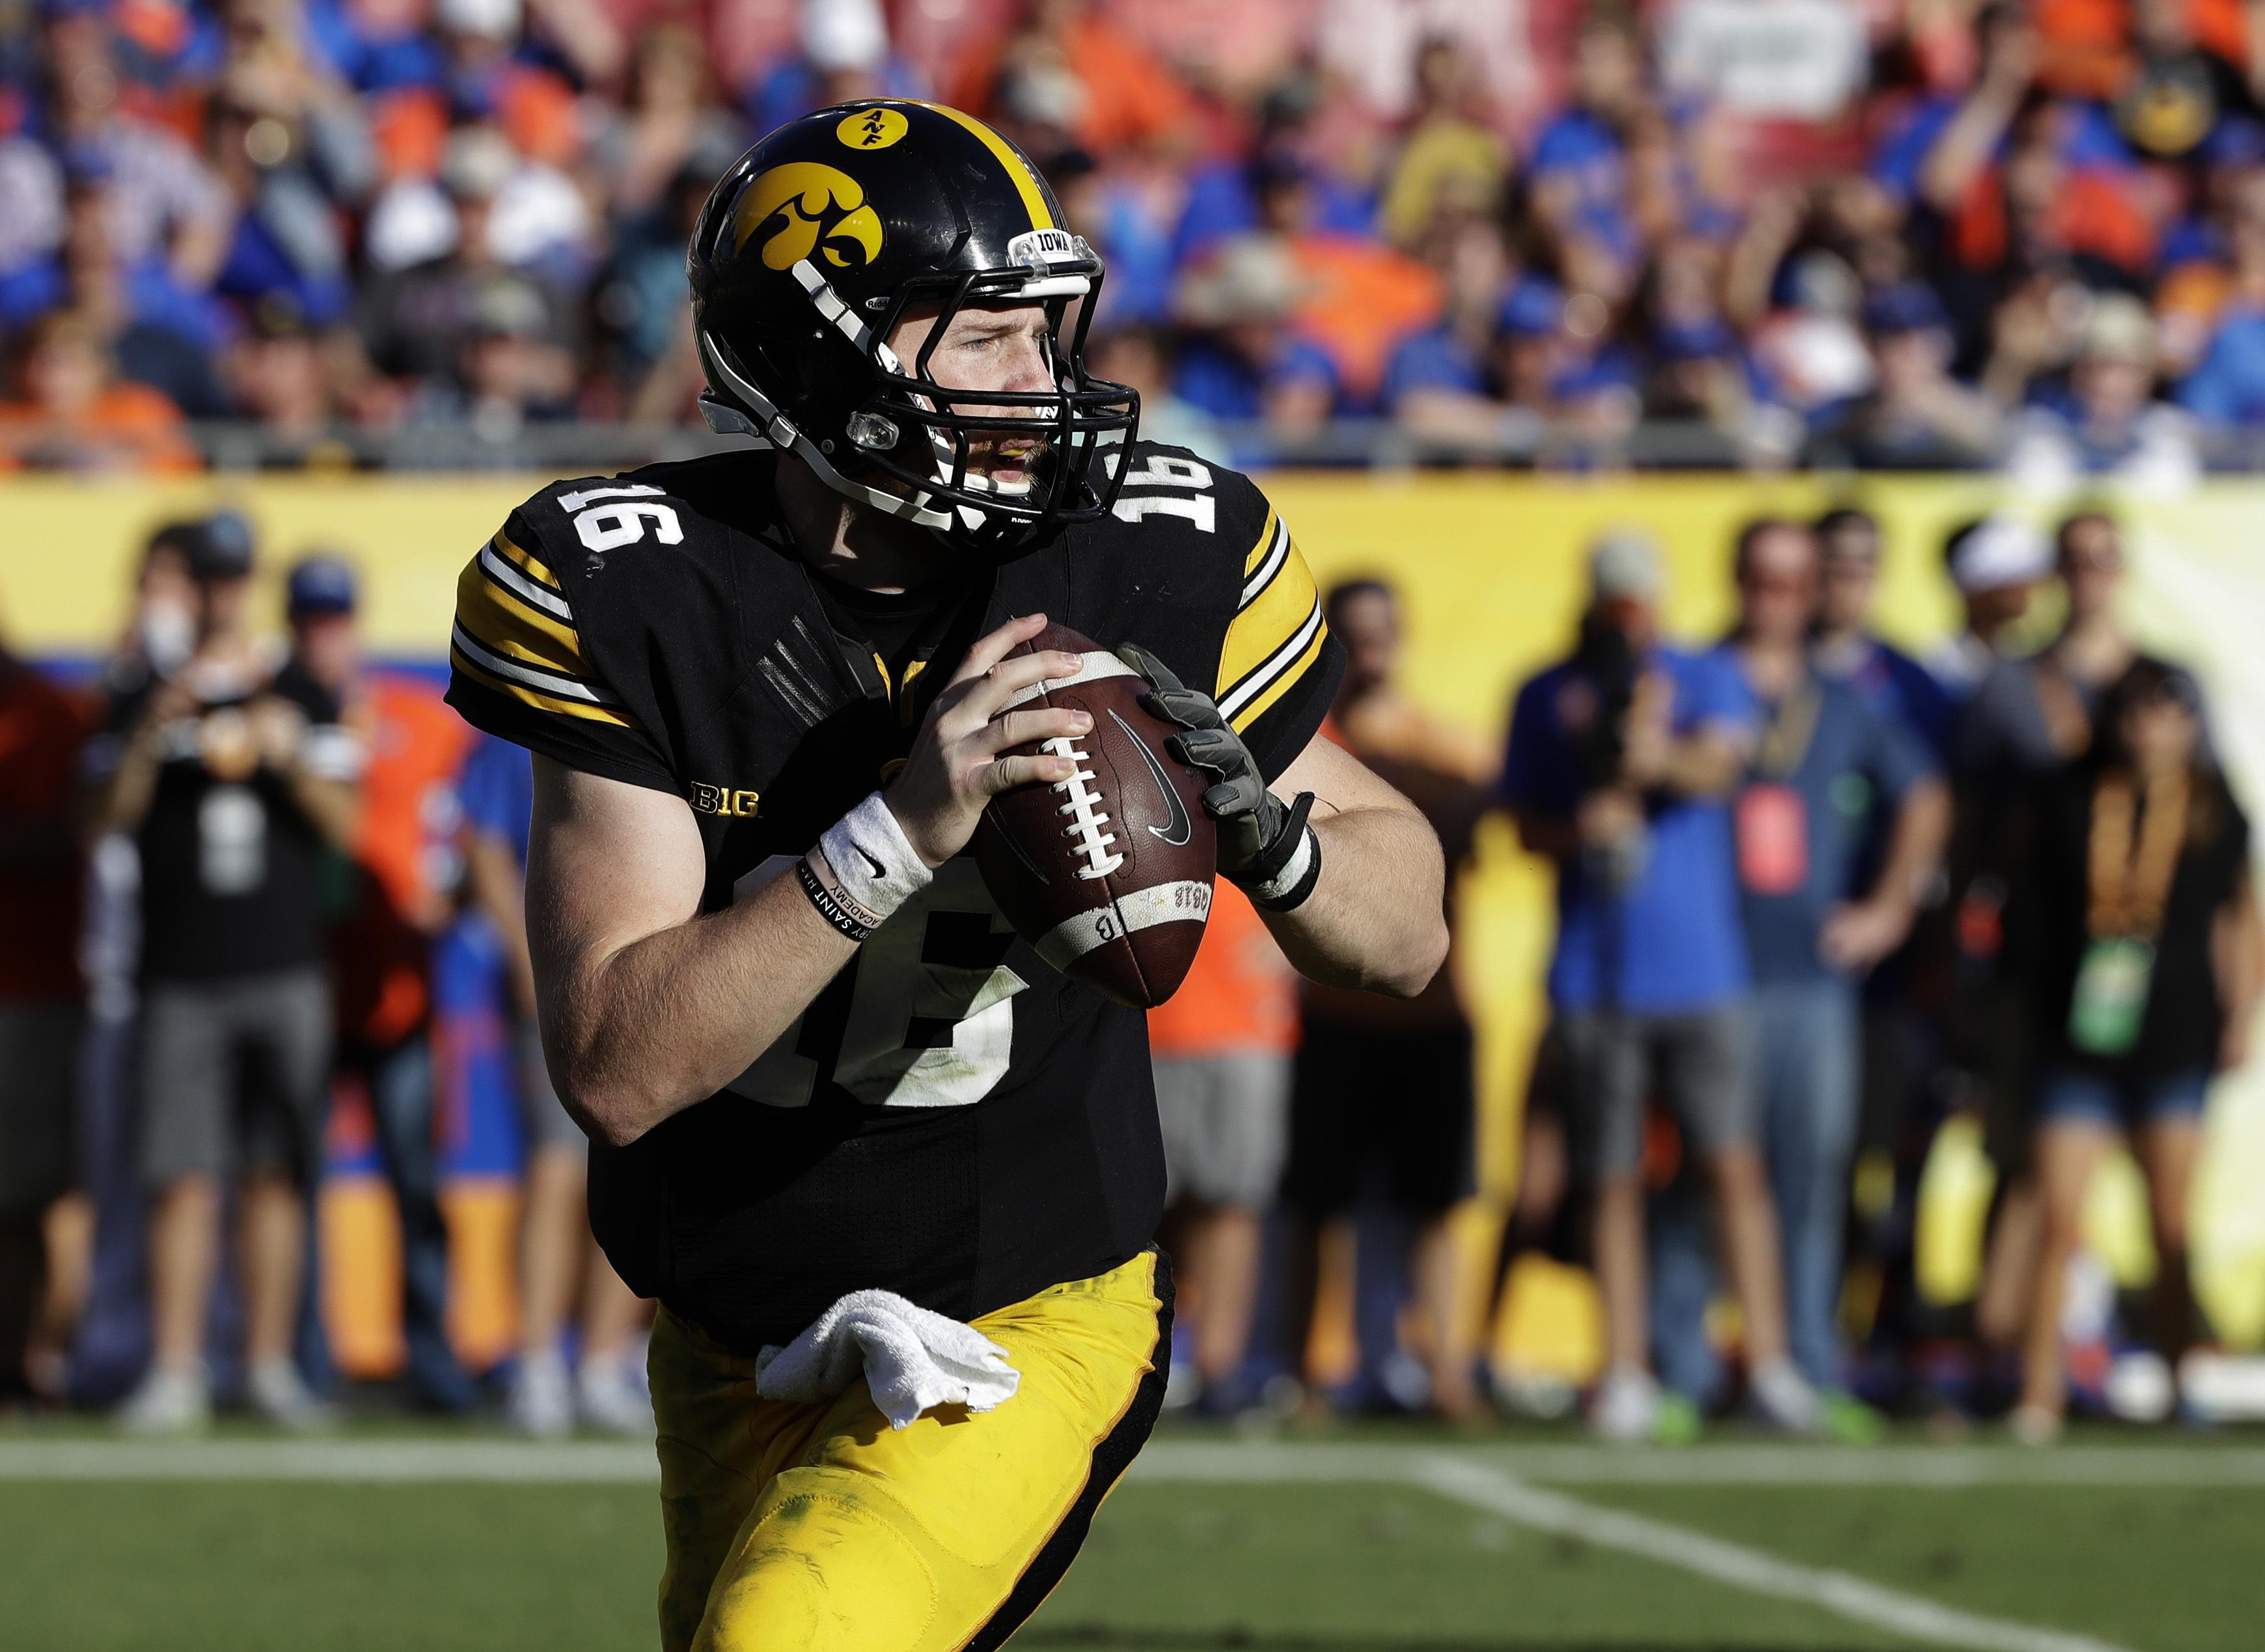 e96872aa6 Iowa quarterback C.J. Beathard during the second half of the Outback Bowl  NCAA college football game